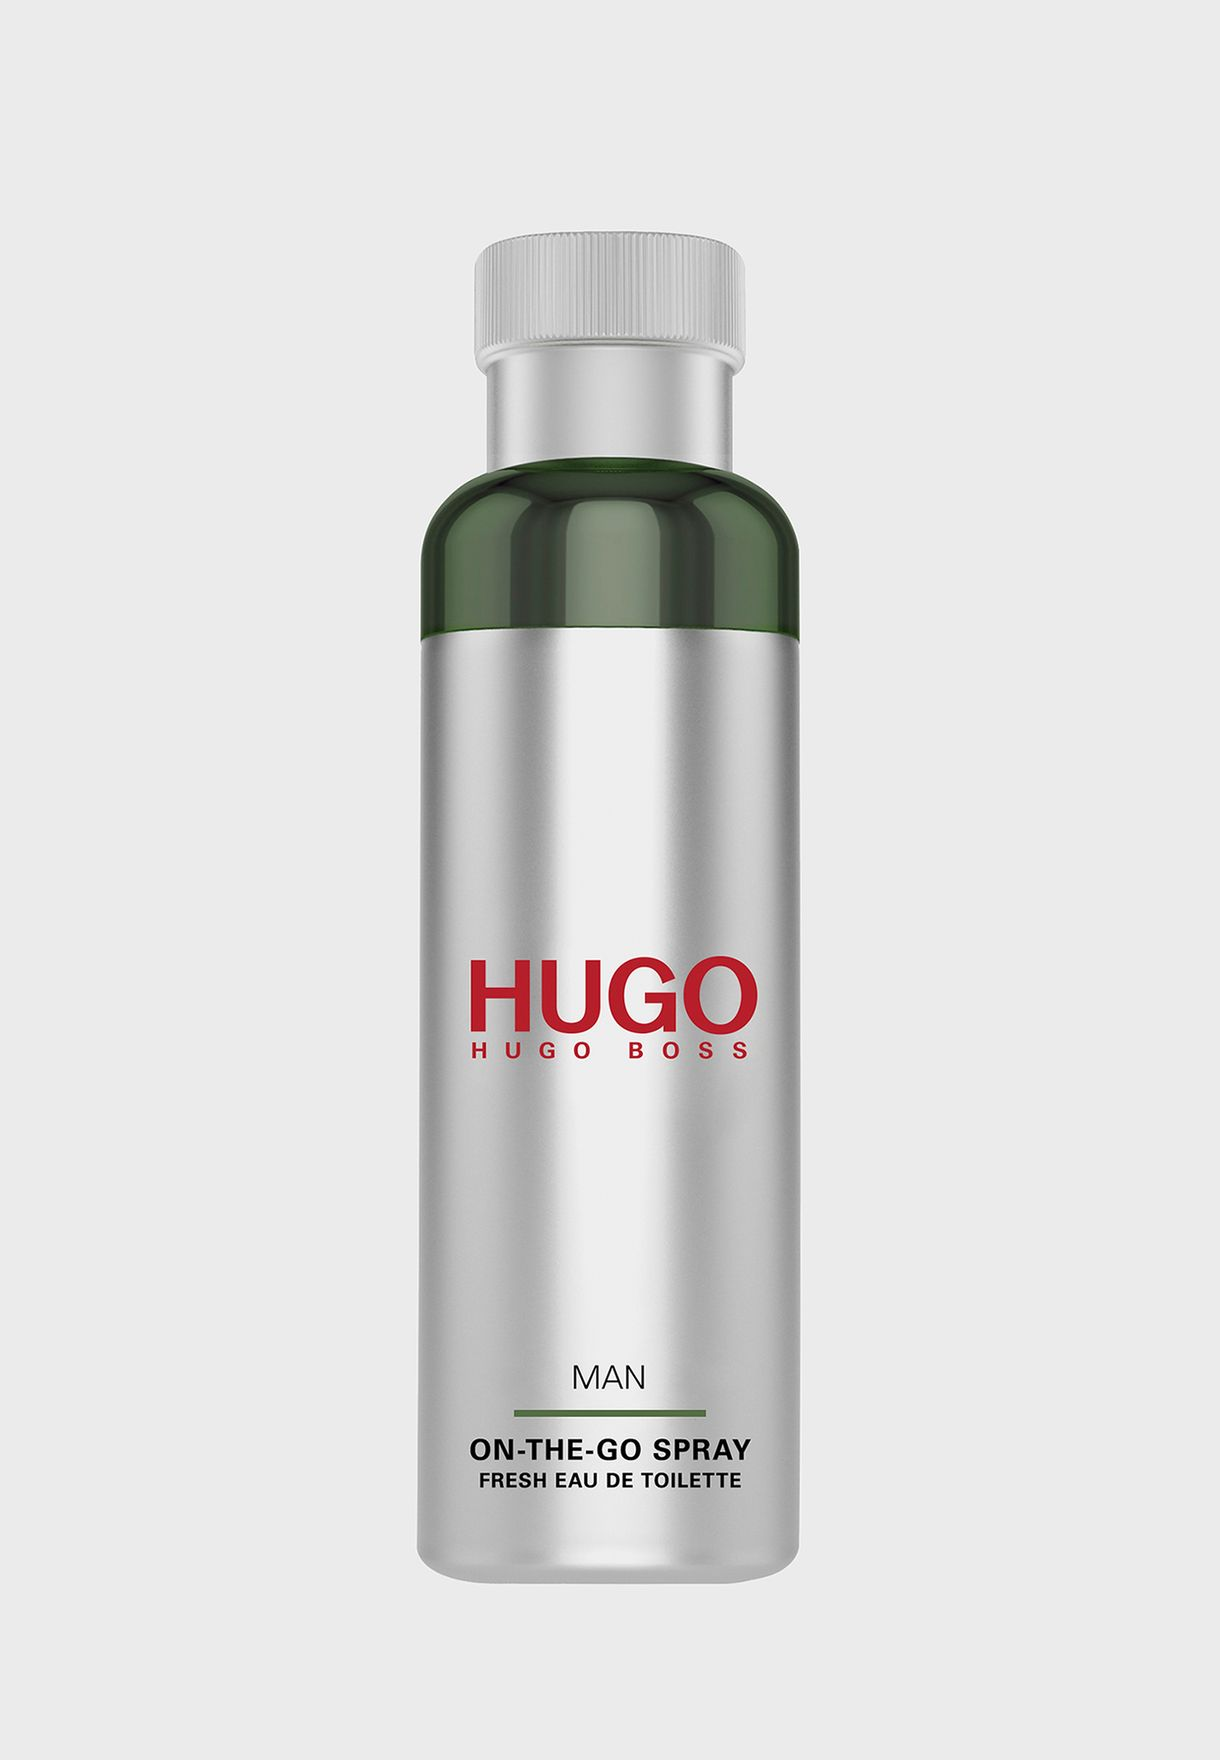 HUGO Man On-the-Go Spray